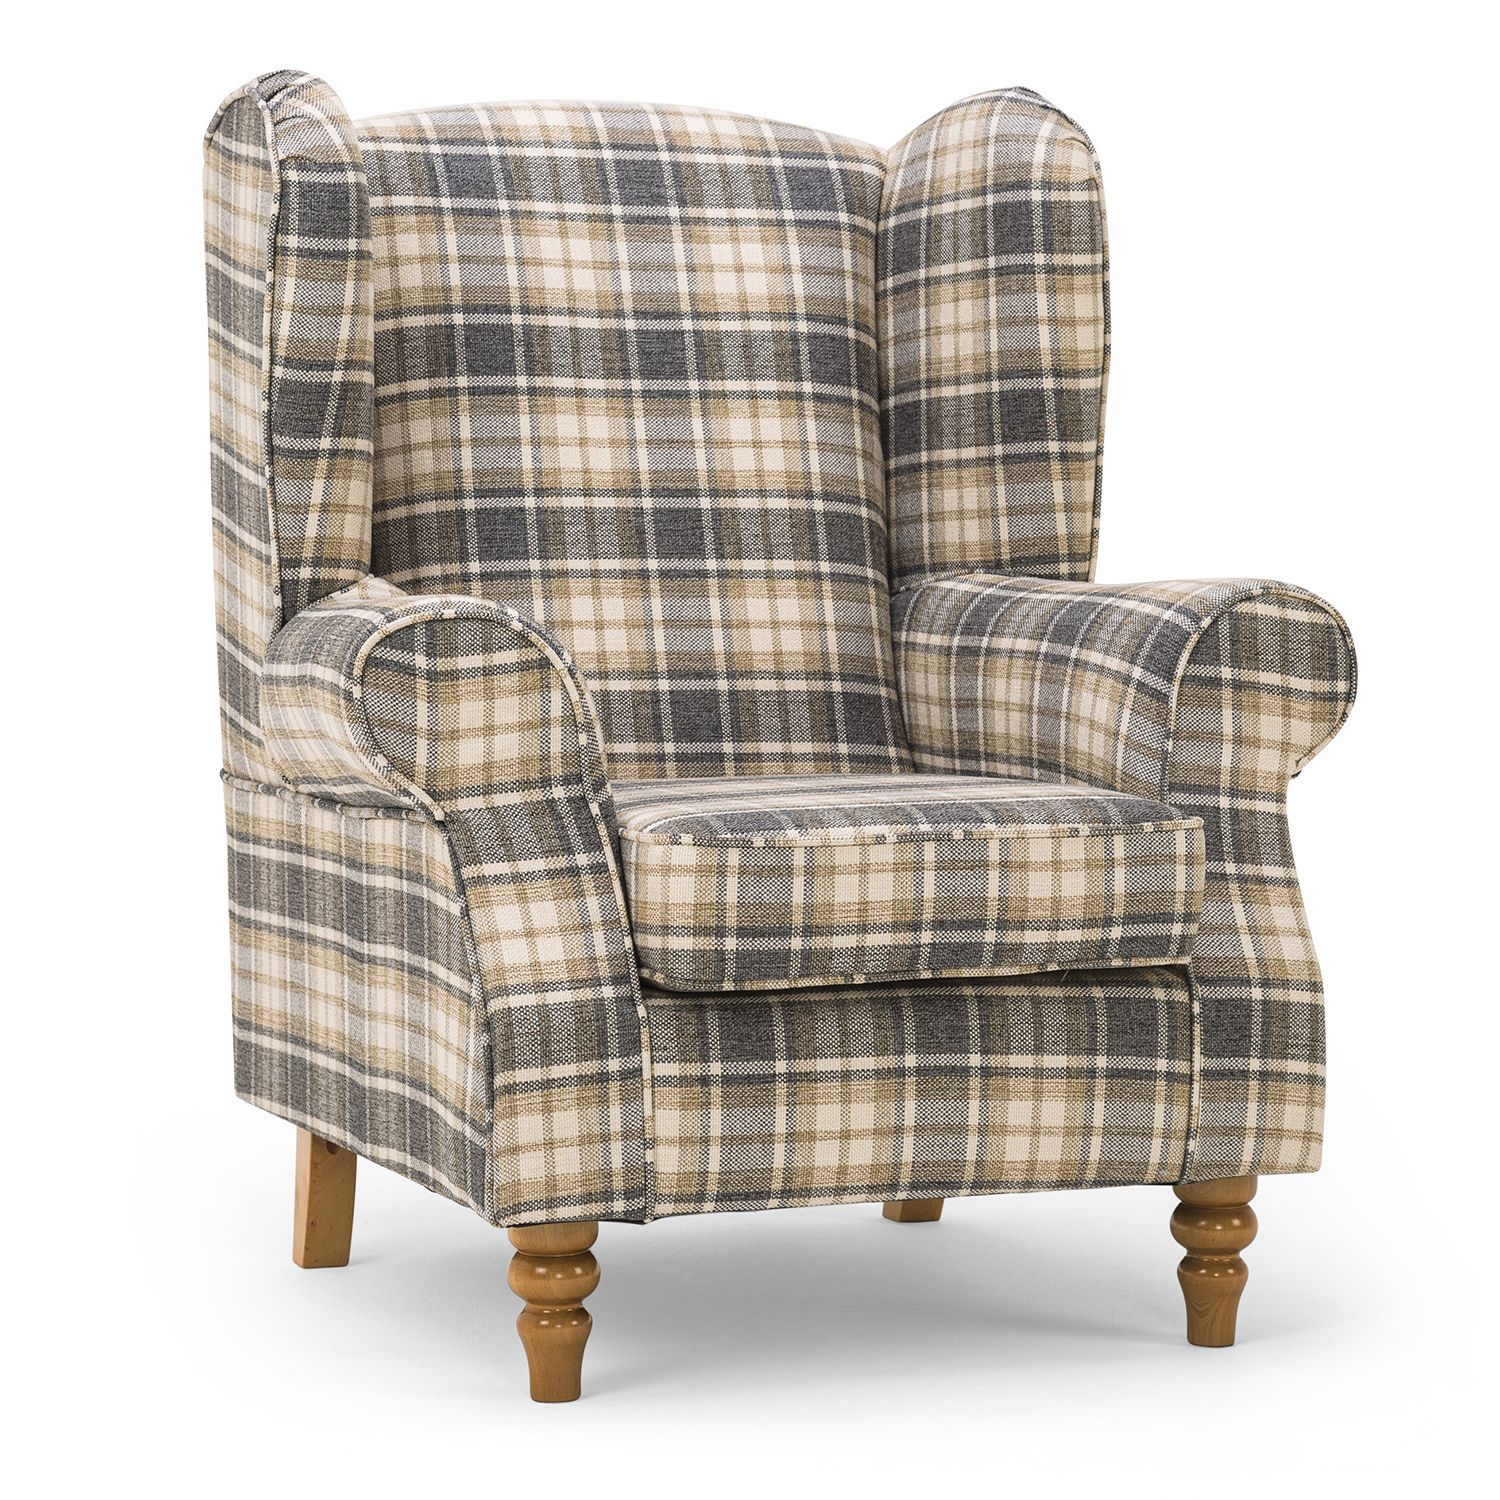 Small Bedroom//Childrens Queen Anne Armchair in Blue Check Alderney Tartan Fabric